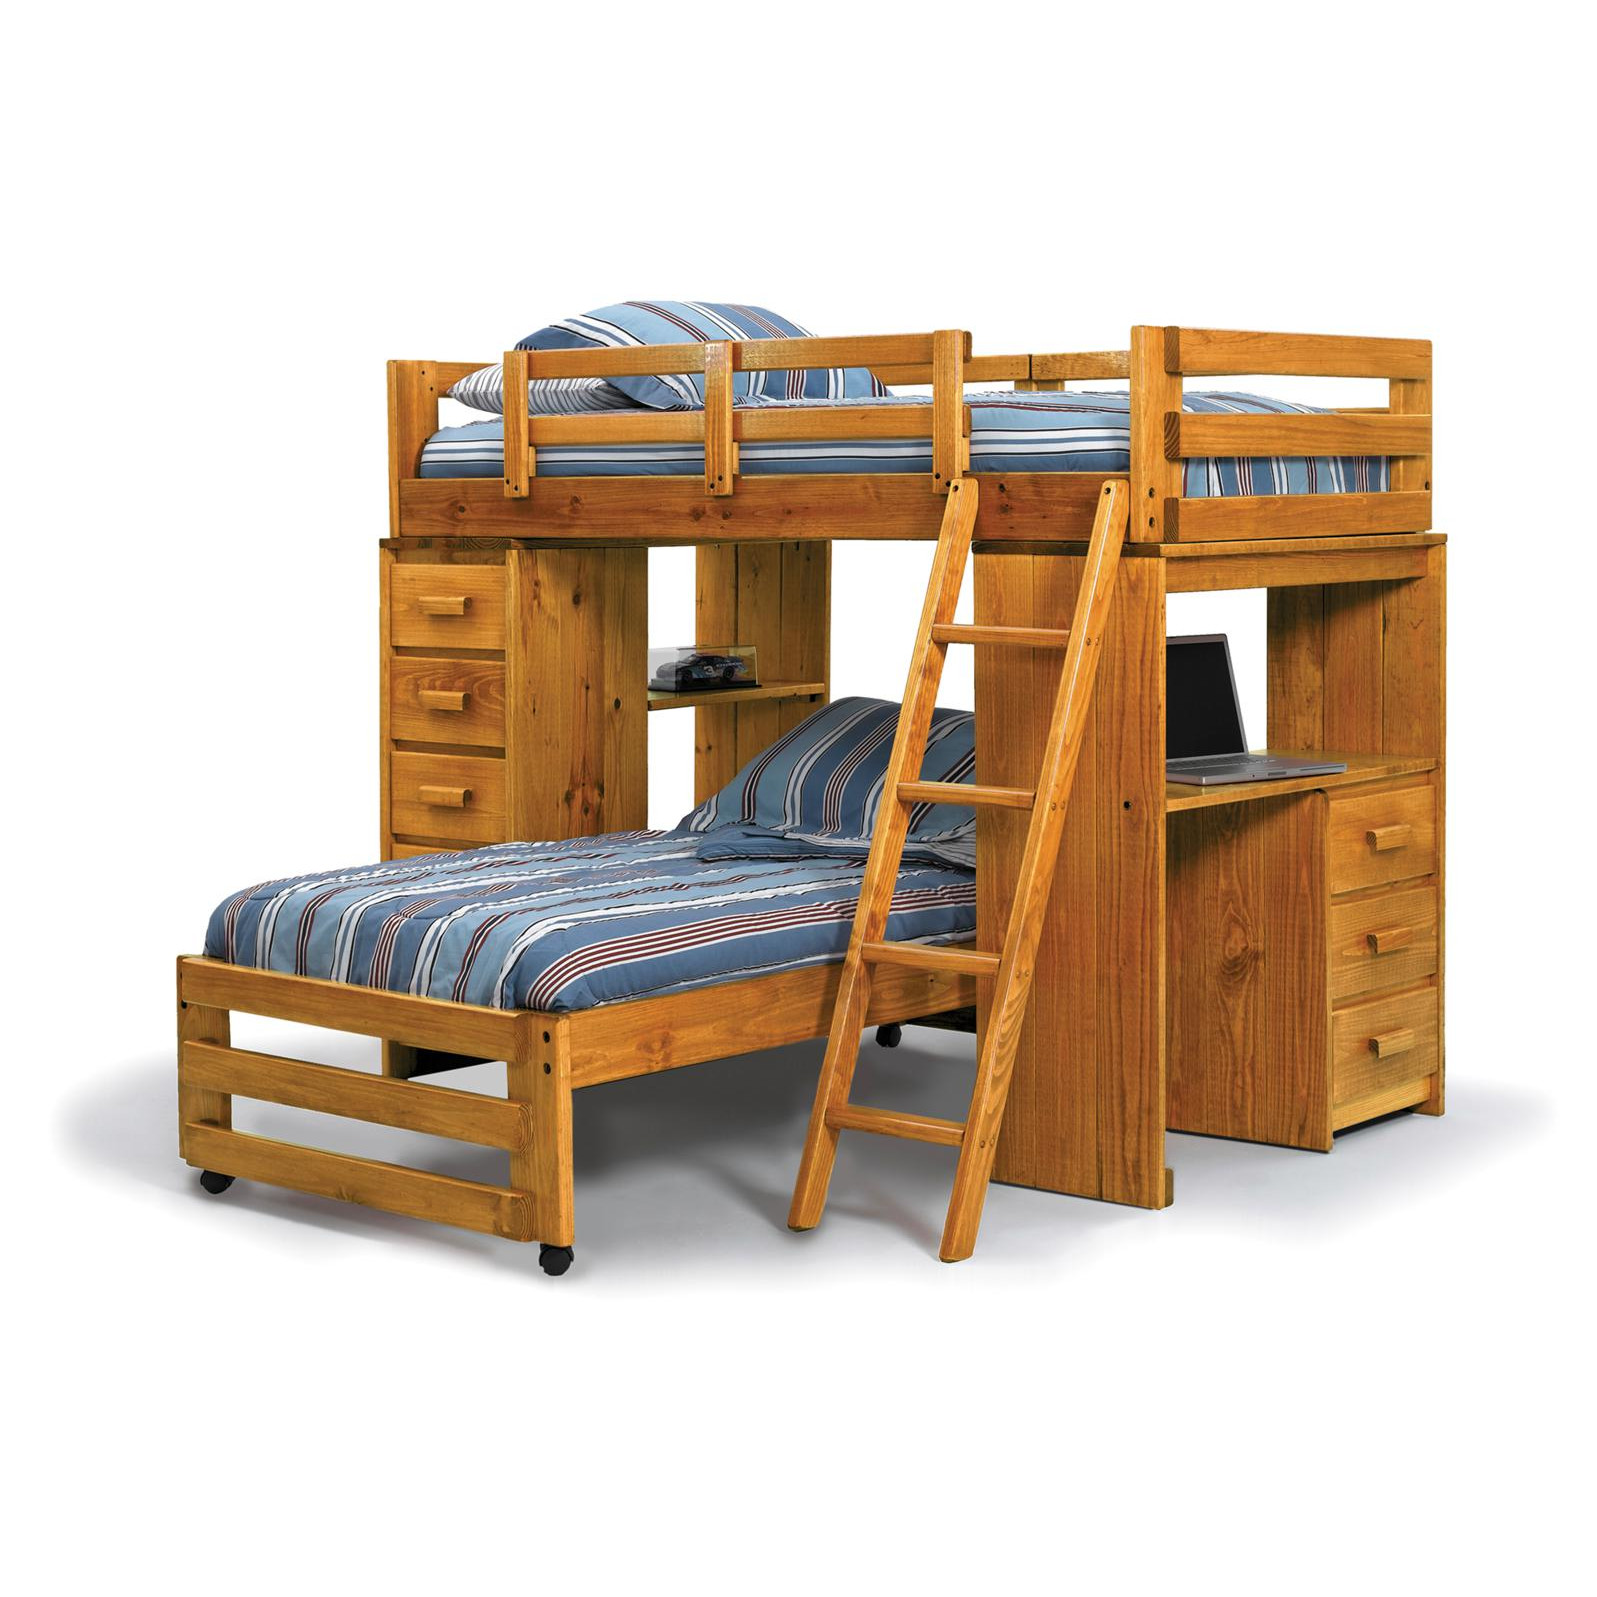 Bed Bunk Twin Over Full Bunk Bed With Desk Best Alternative For